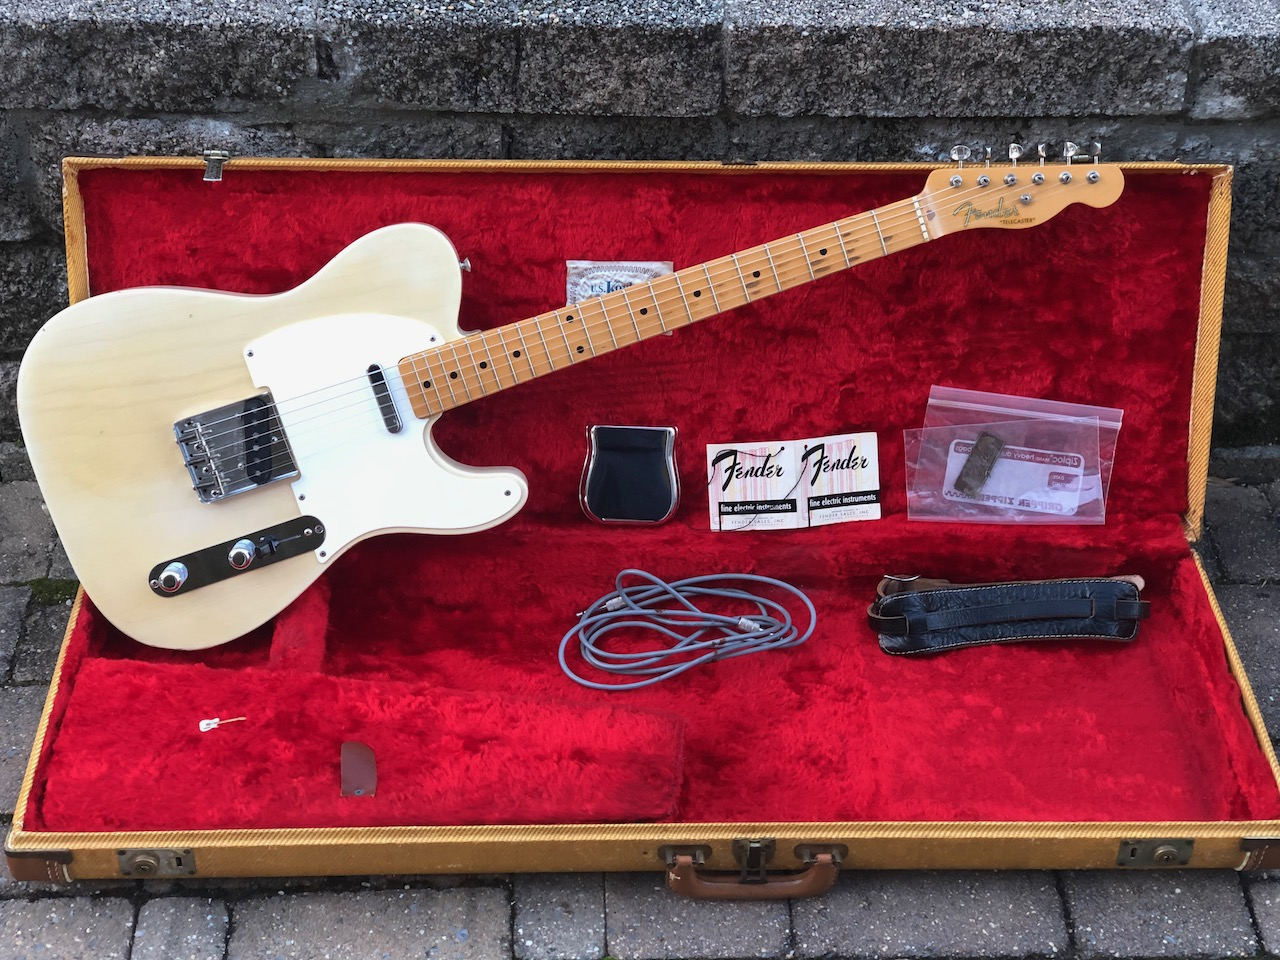 1956 Fender Tele – 100% Original